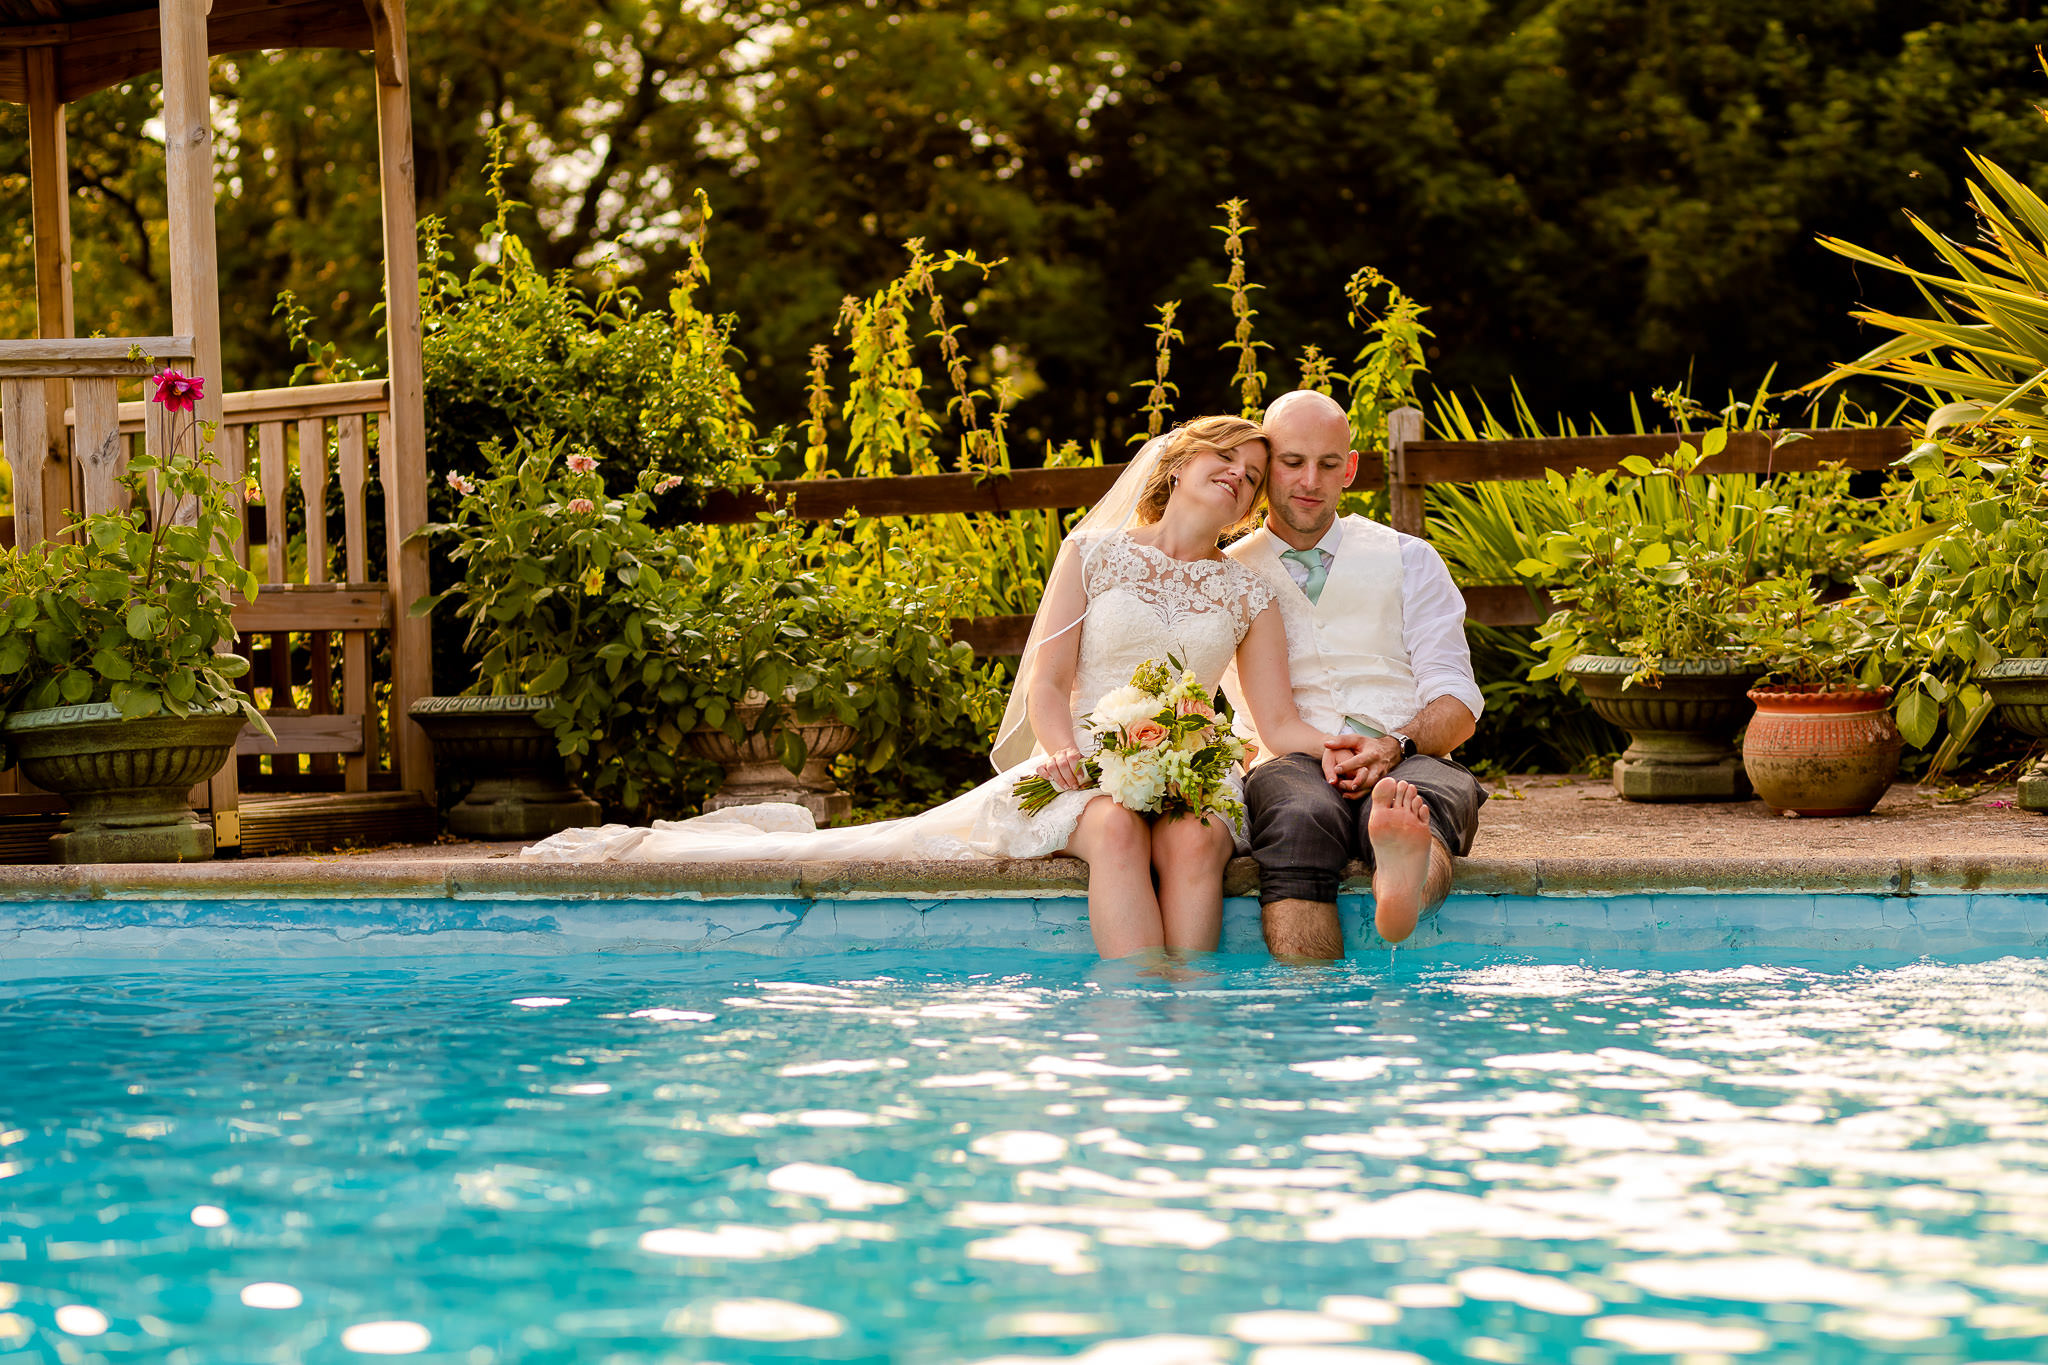 Art by Design - Caer Llan Wedding Photography - Bride and Groom in the pool